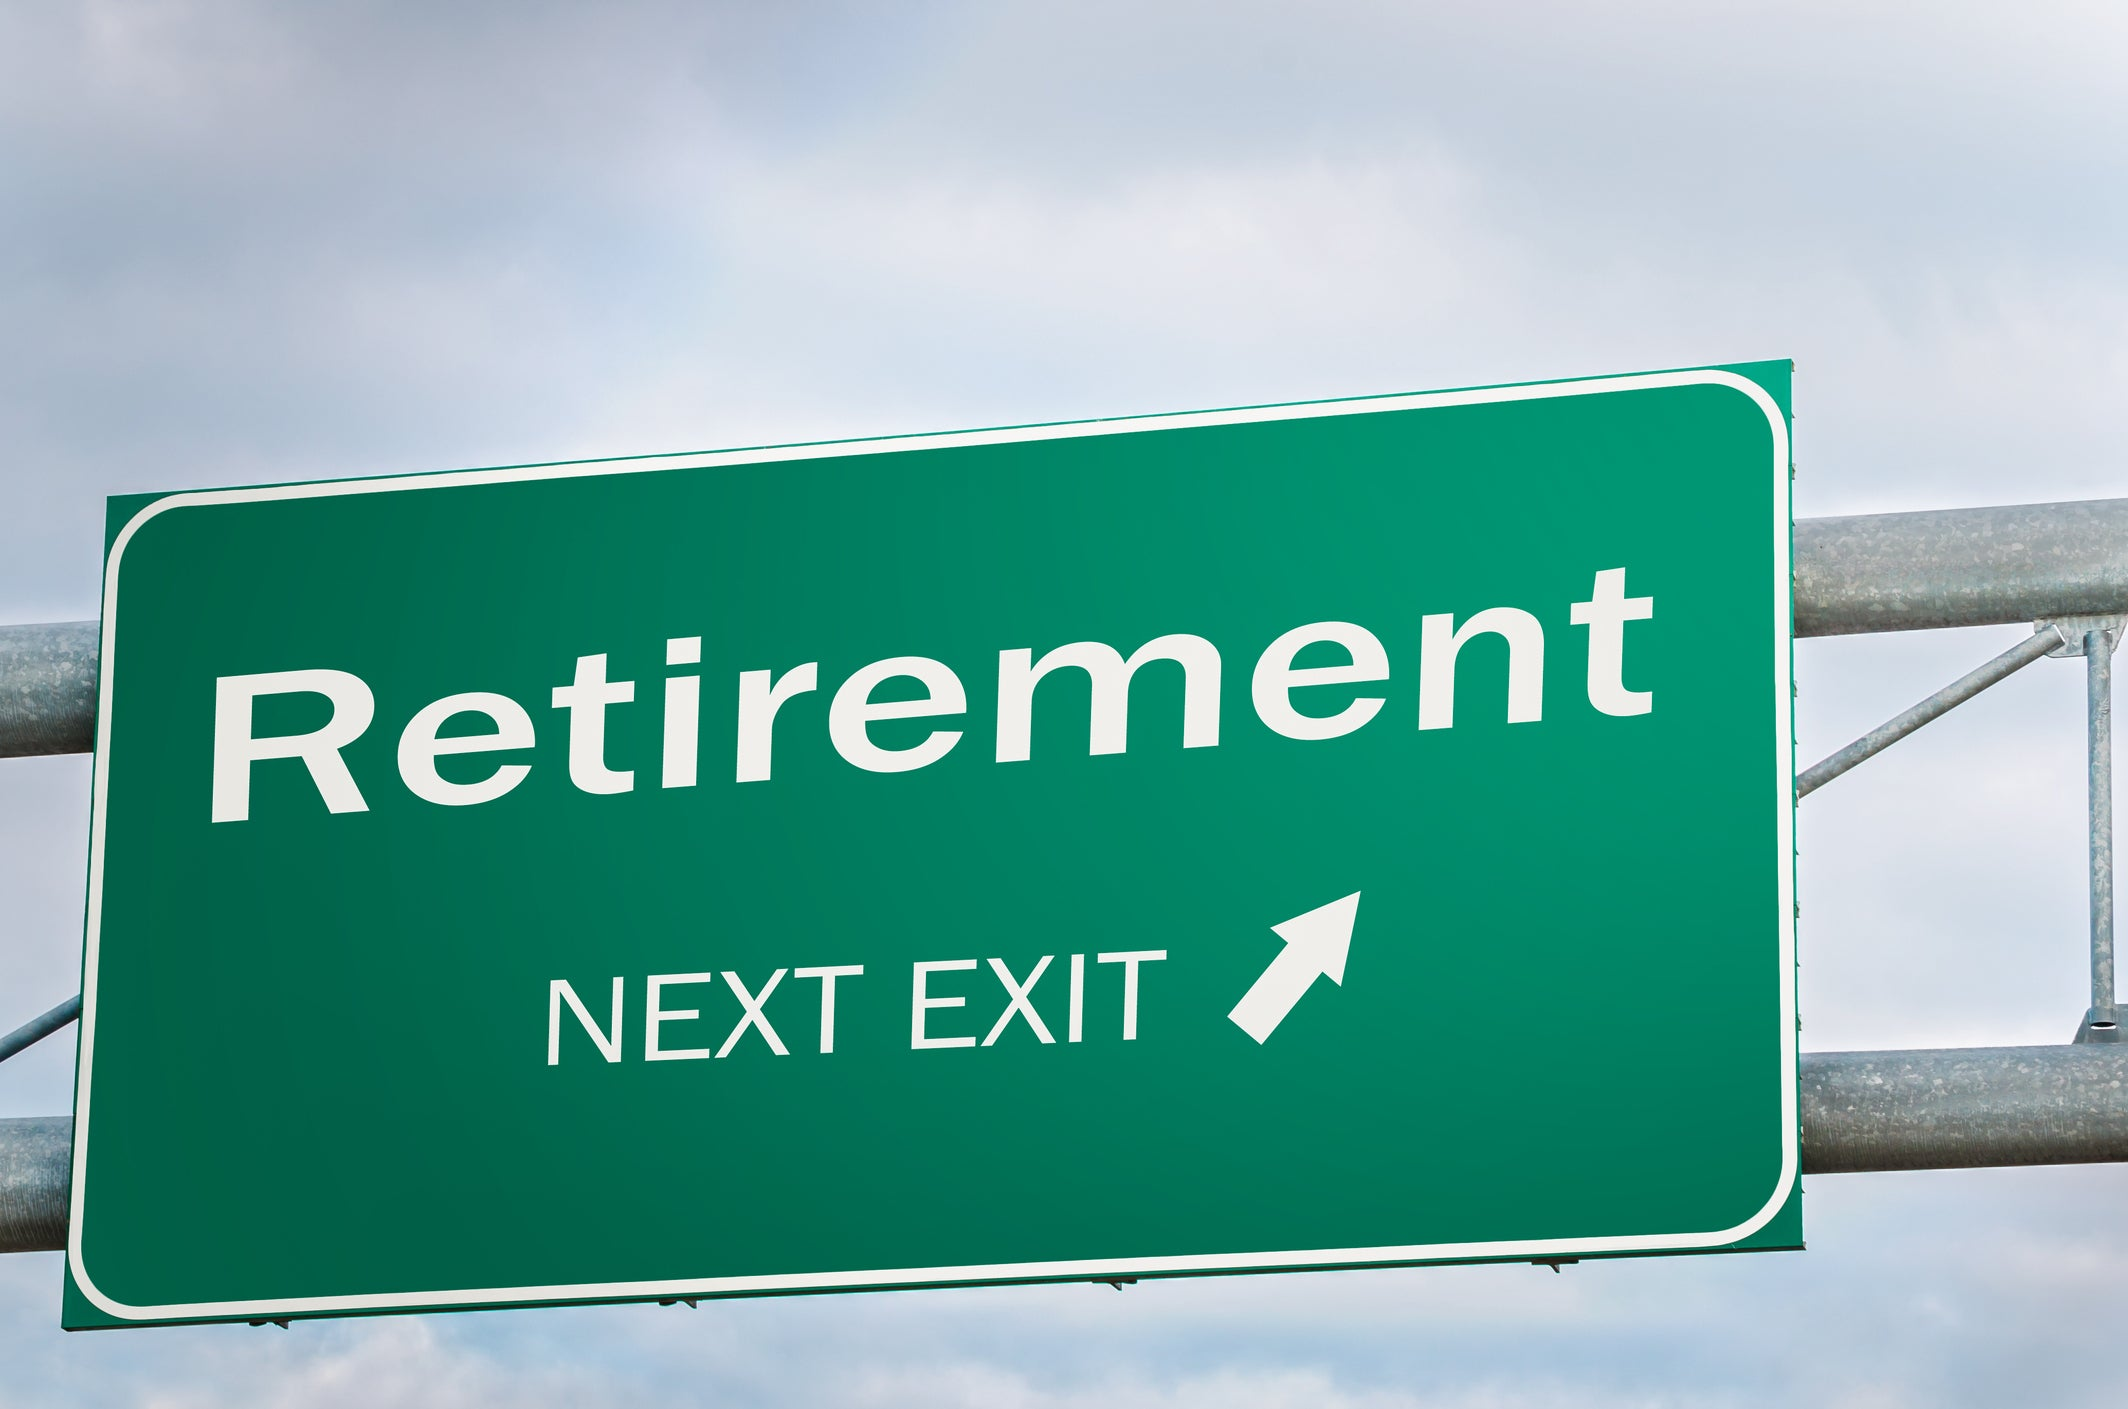 retirement retire facts early exit reasons sign road fool getty motley know source highway